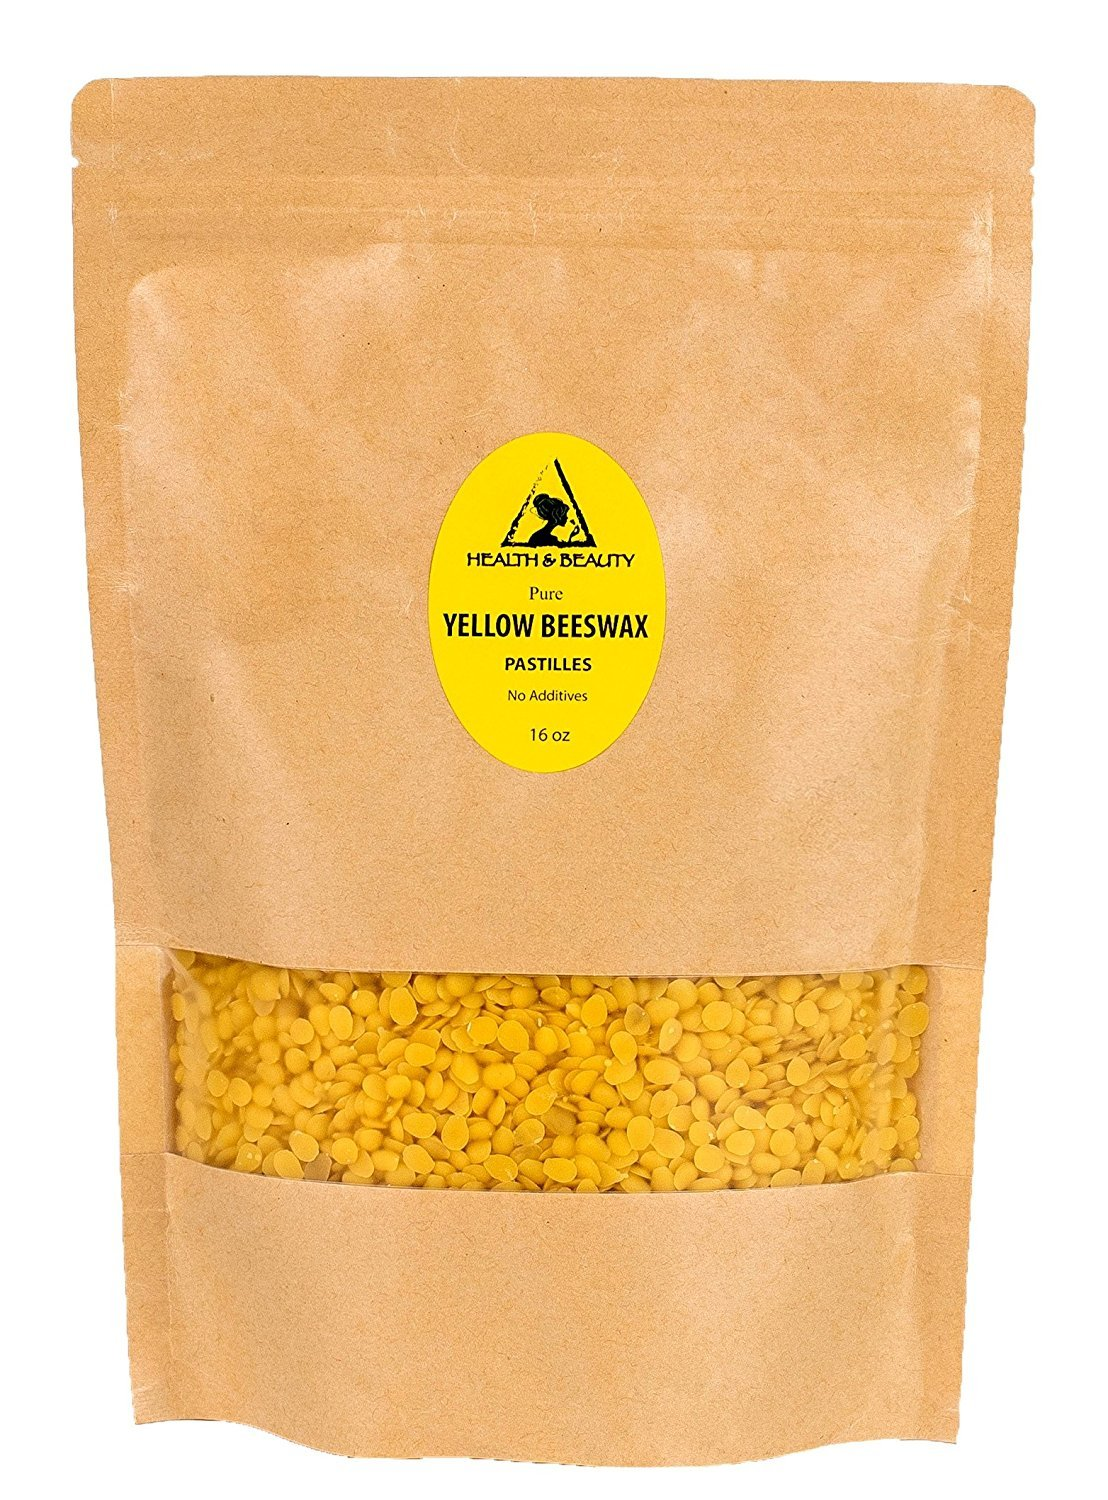 Yellow Beeswax Bees Wax Organic by H&B OILS CENTER Pastilles Beads Premium Prime Grade A 100% Pure 16 oz, 1 LB